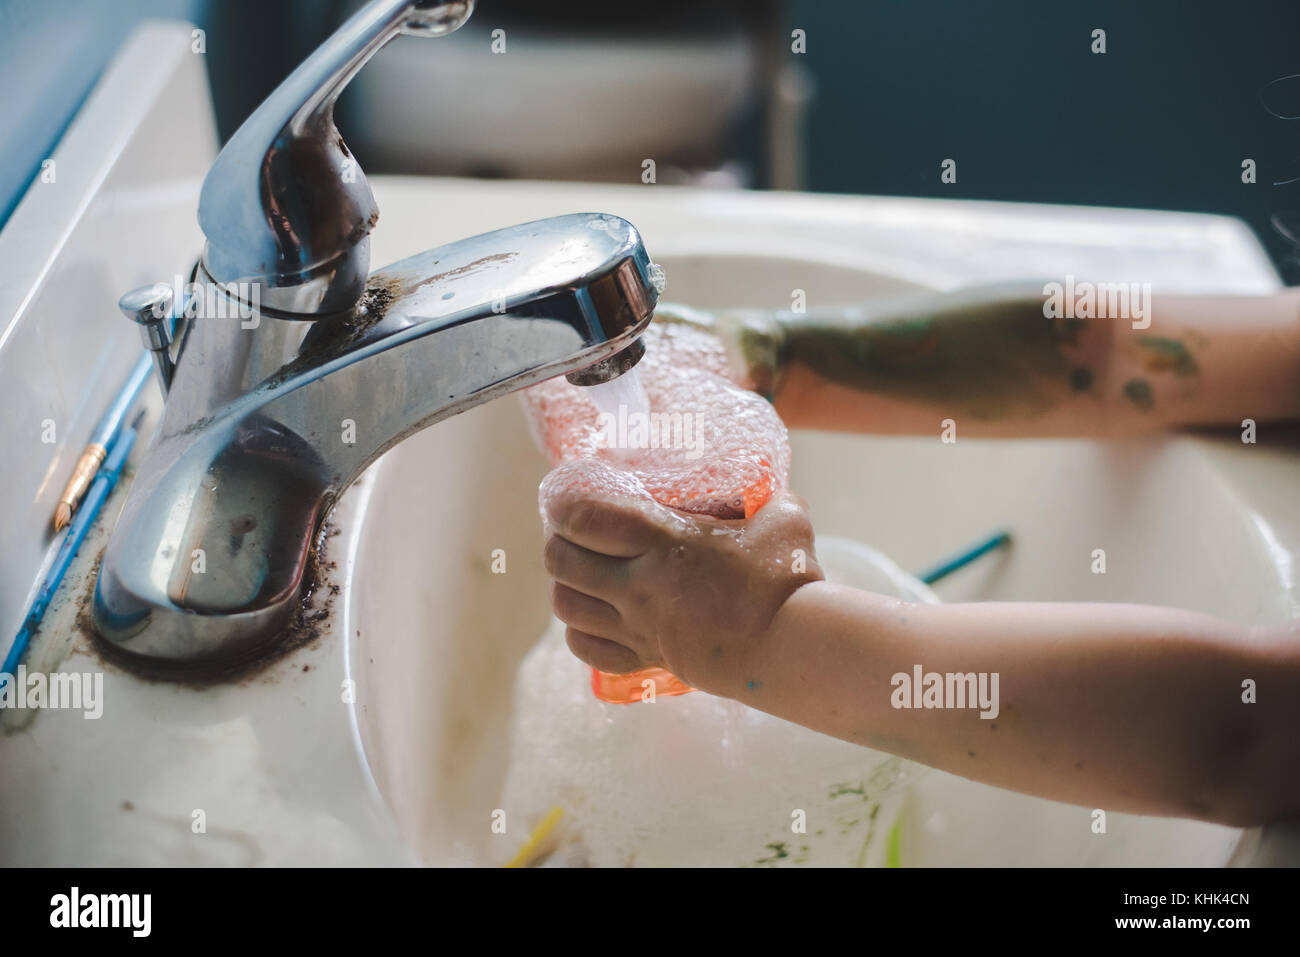 A toddler girl washing paint off her hands in a bathroom sink. Stock Photo